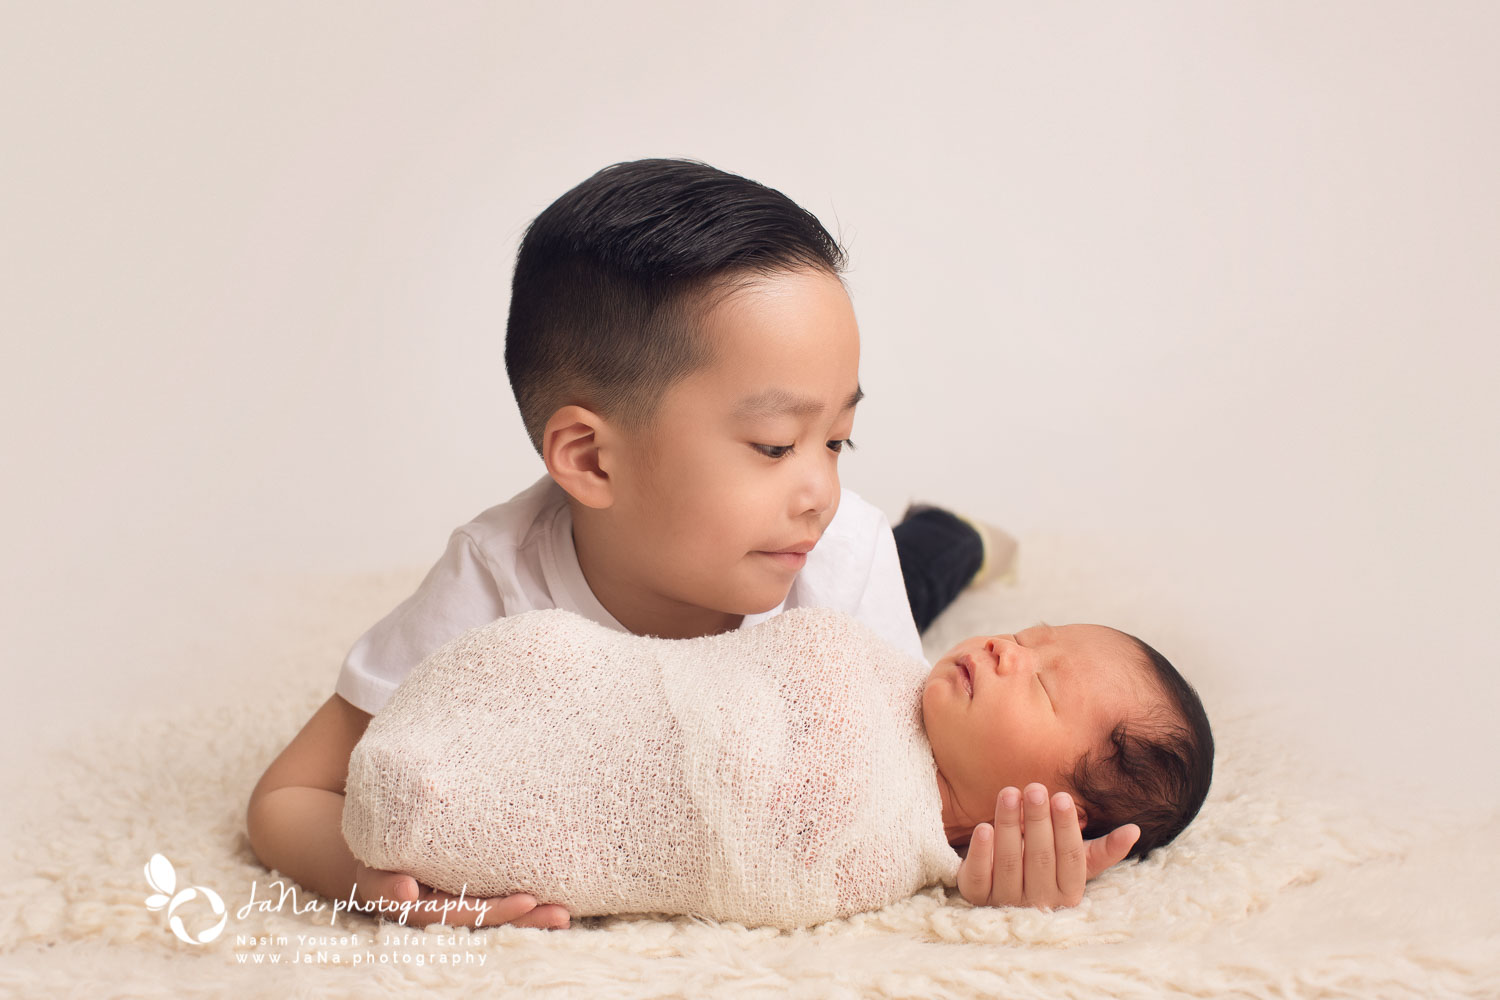 Newborn photography Vancouver - Siblings